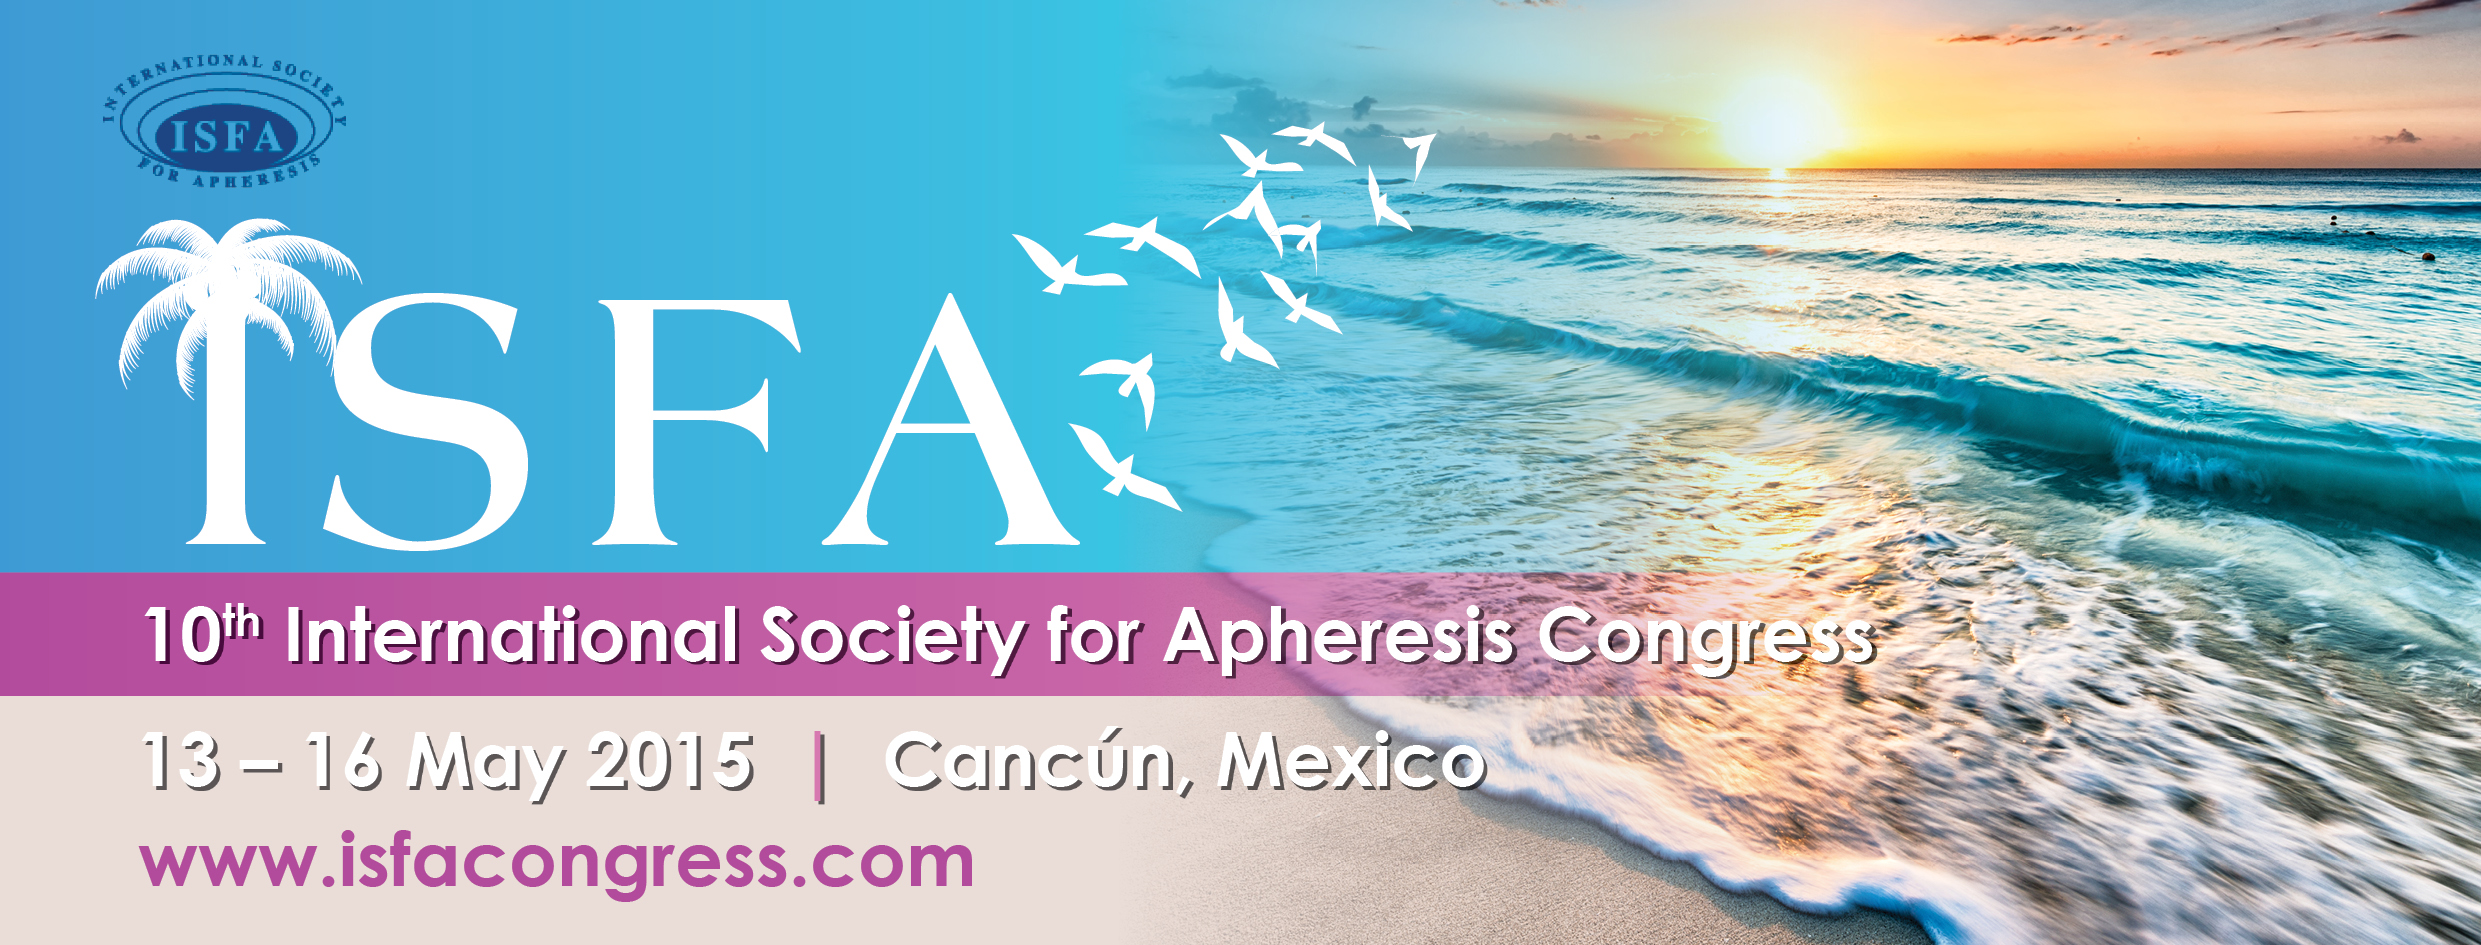 10th International Society for Apheresis Congress (ISFA 2015)